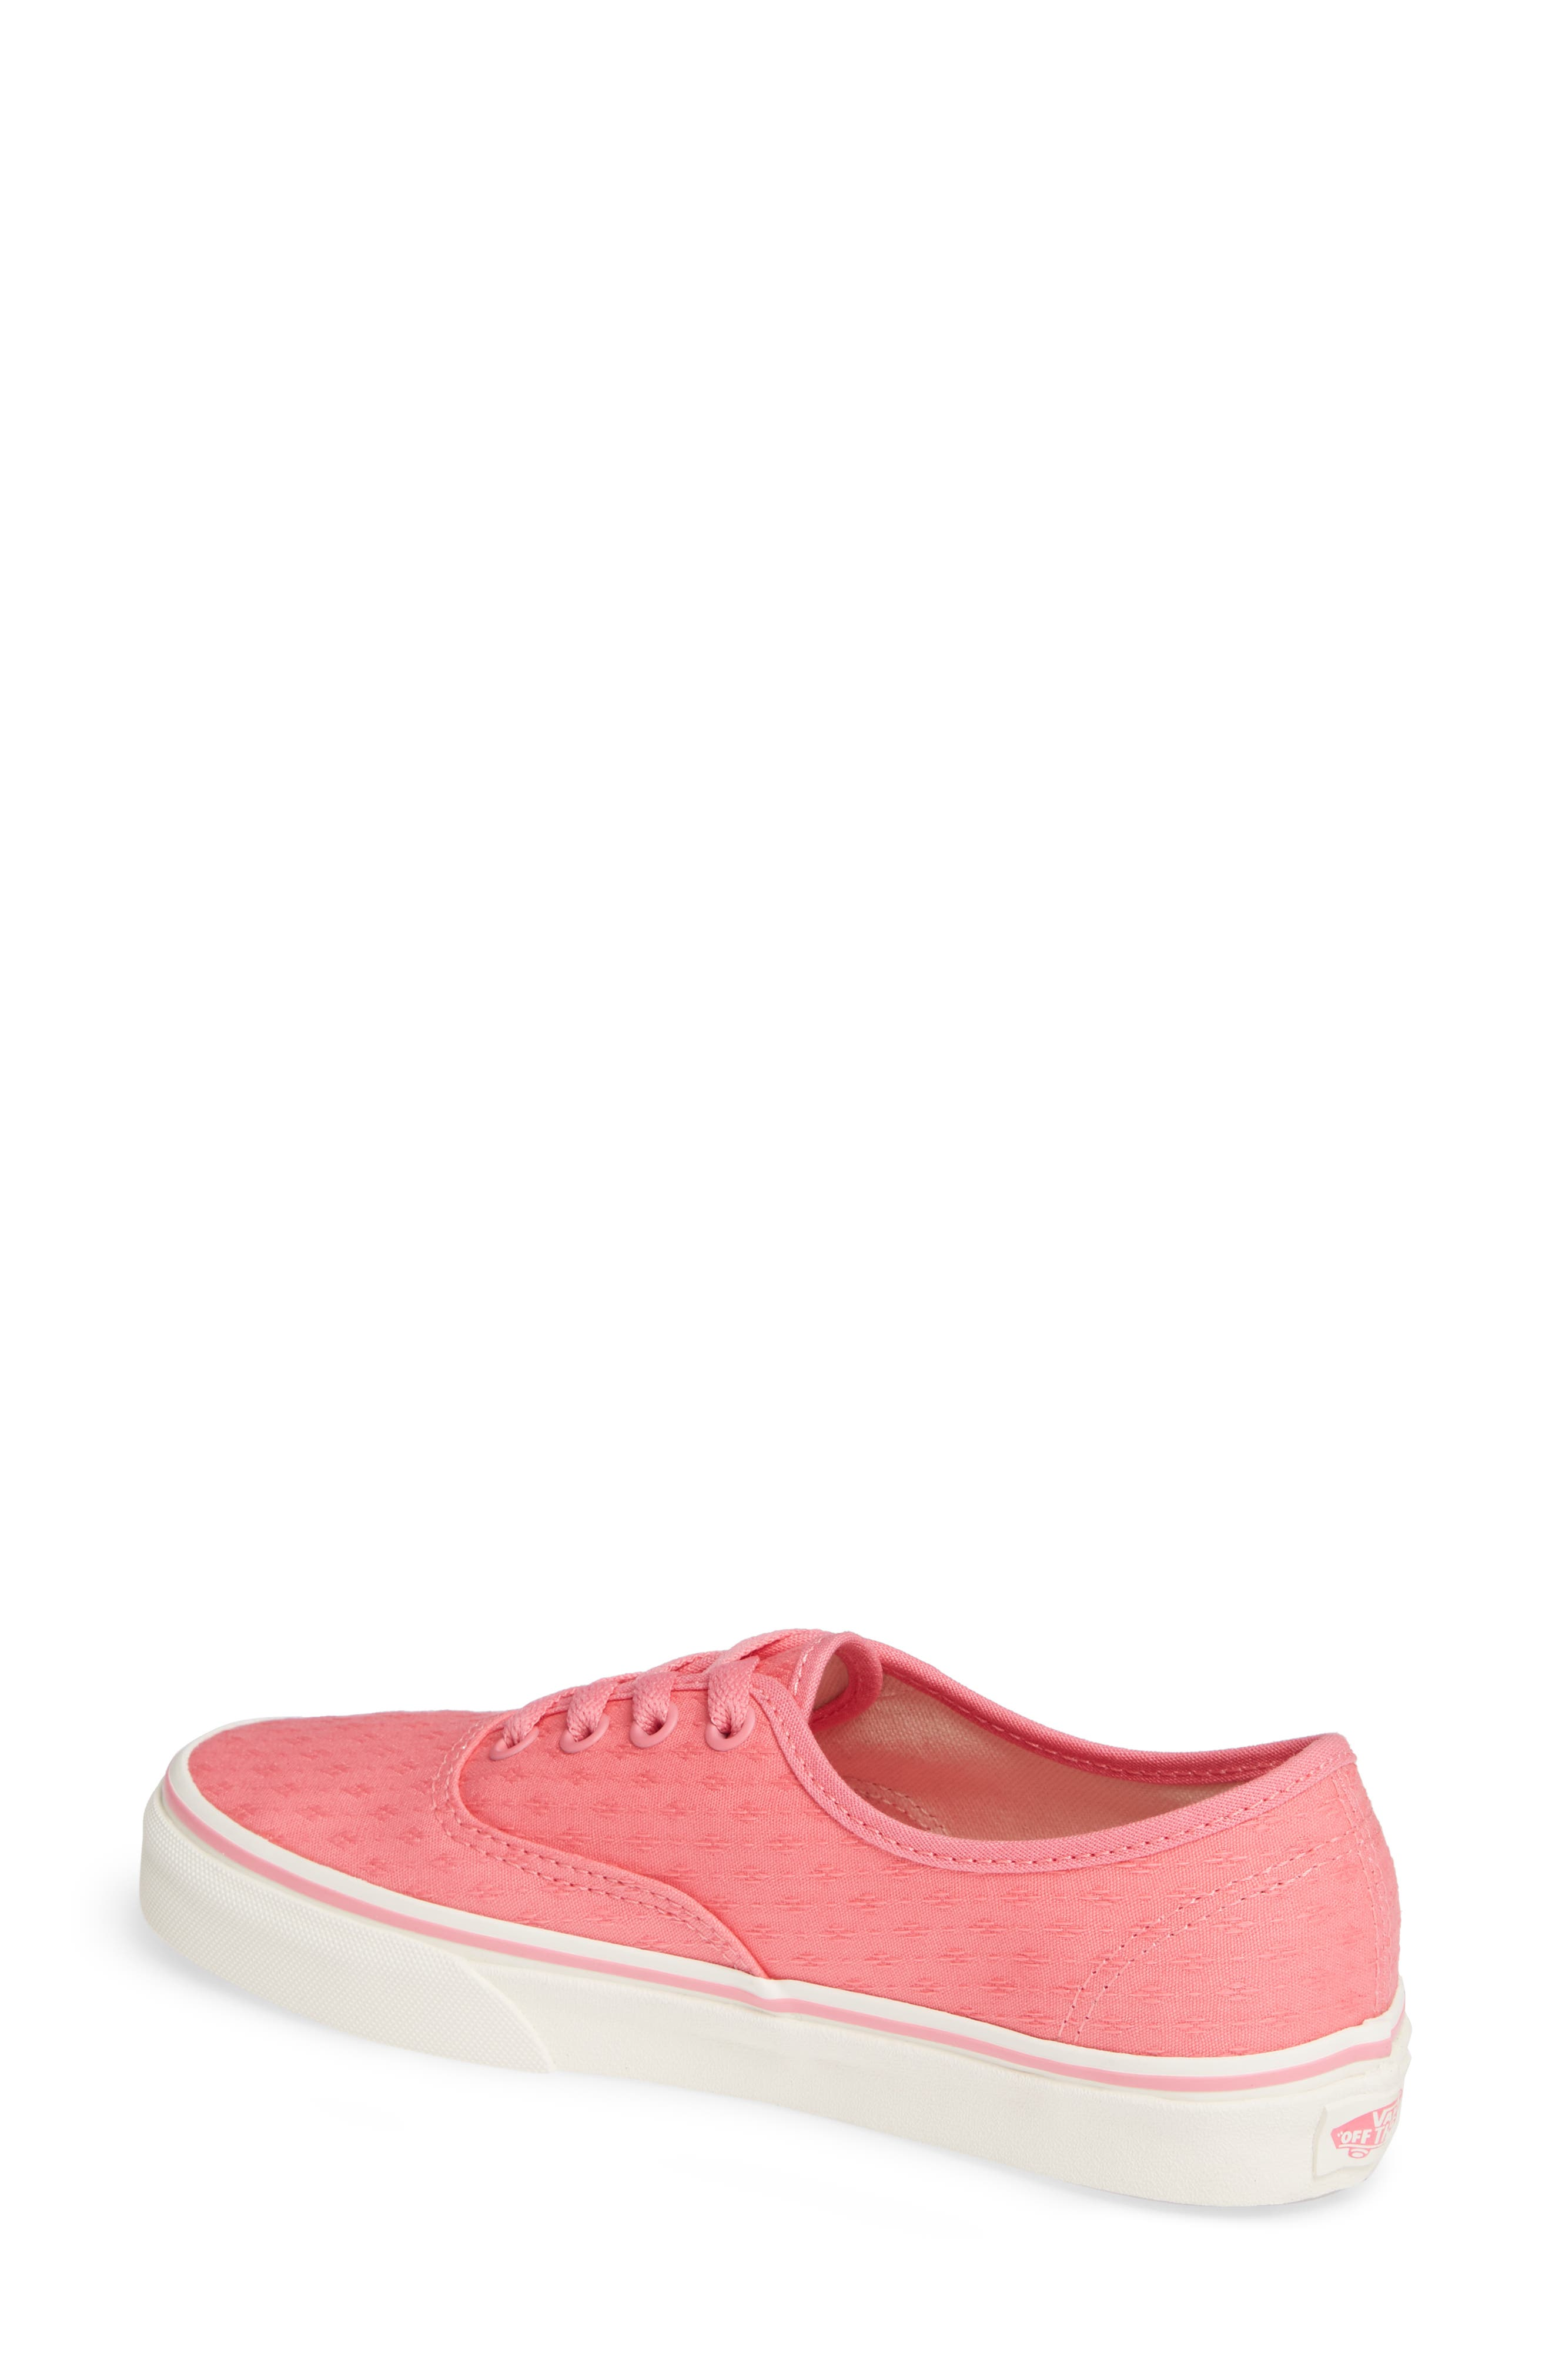 'Authentic' Sneaker,                             Alternate thumbnail 2, color,                             PINK LEMONADE/ MARSHMALLOW